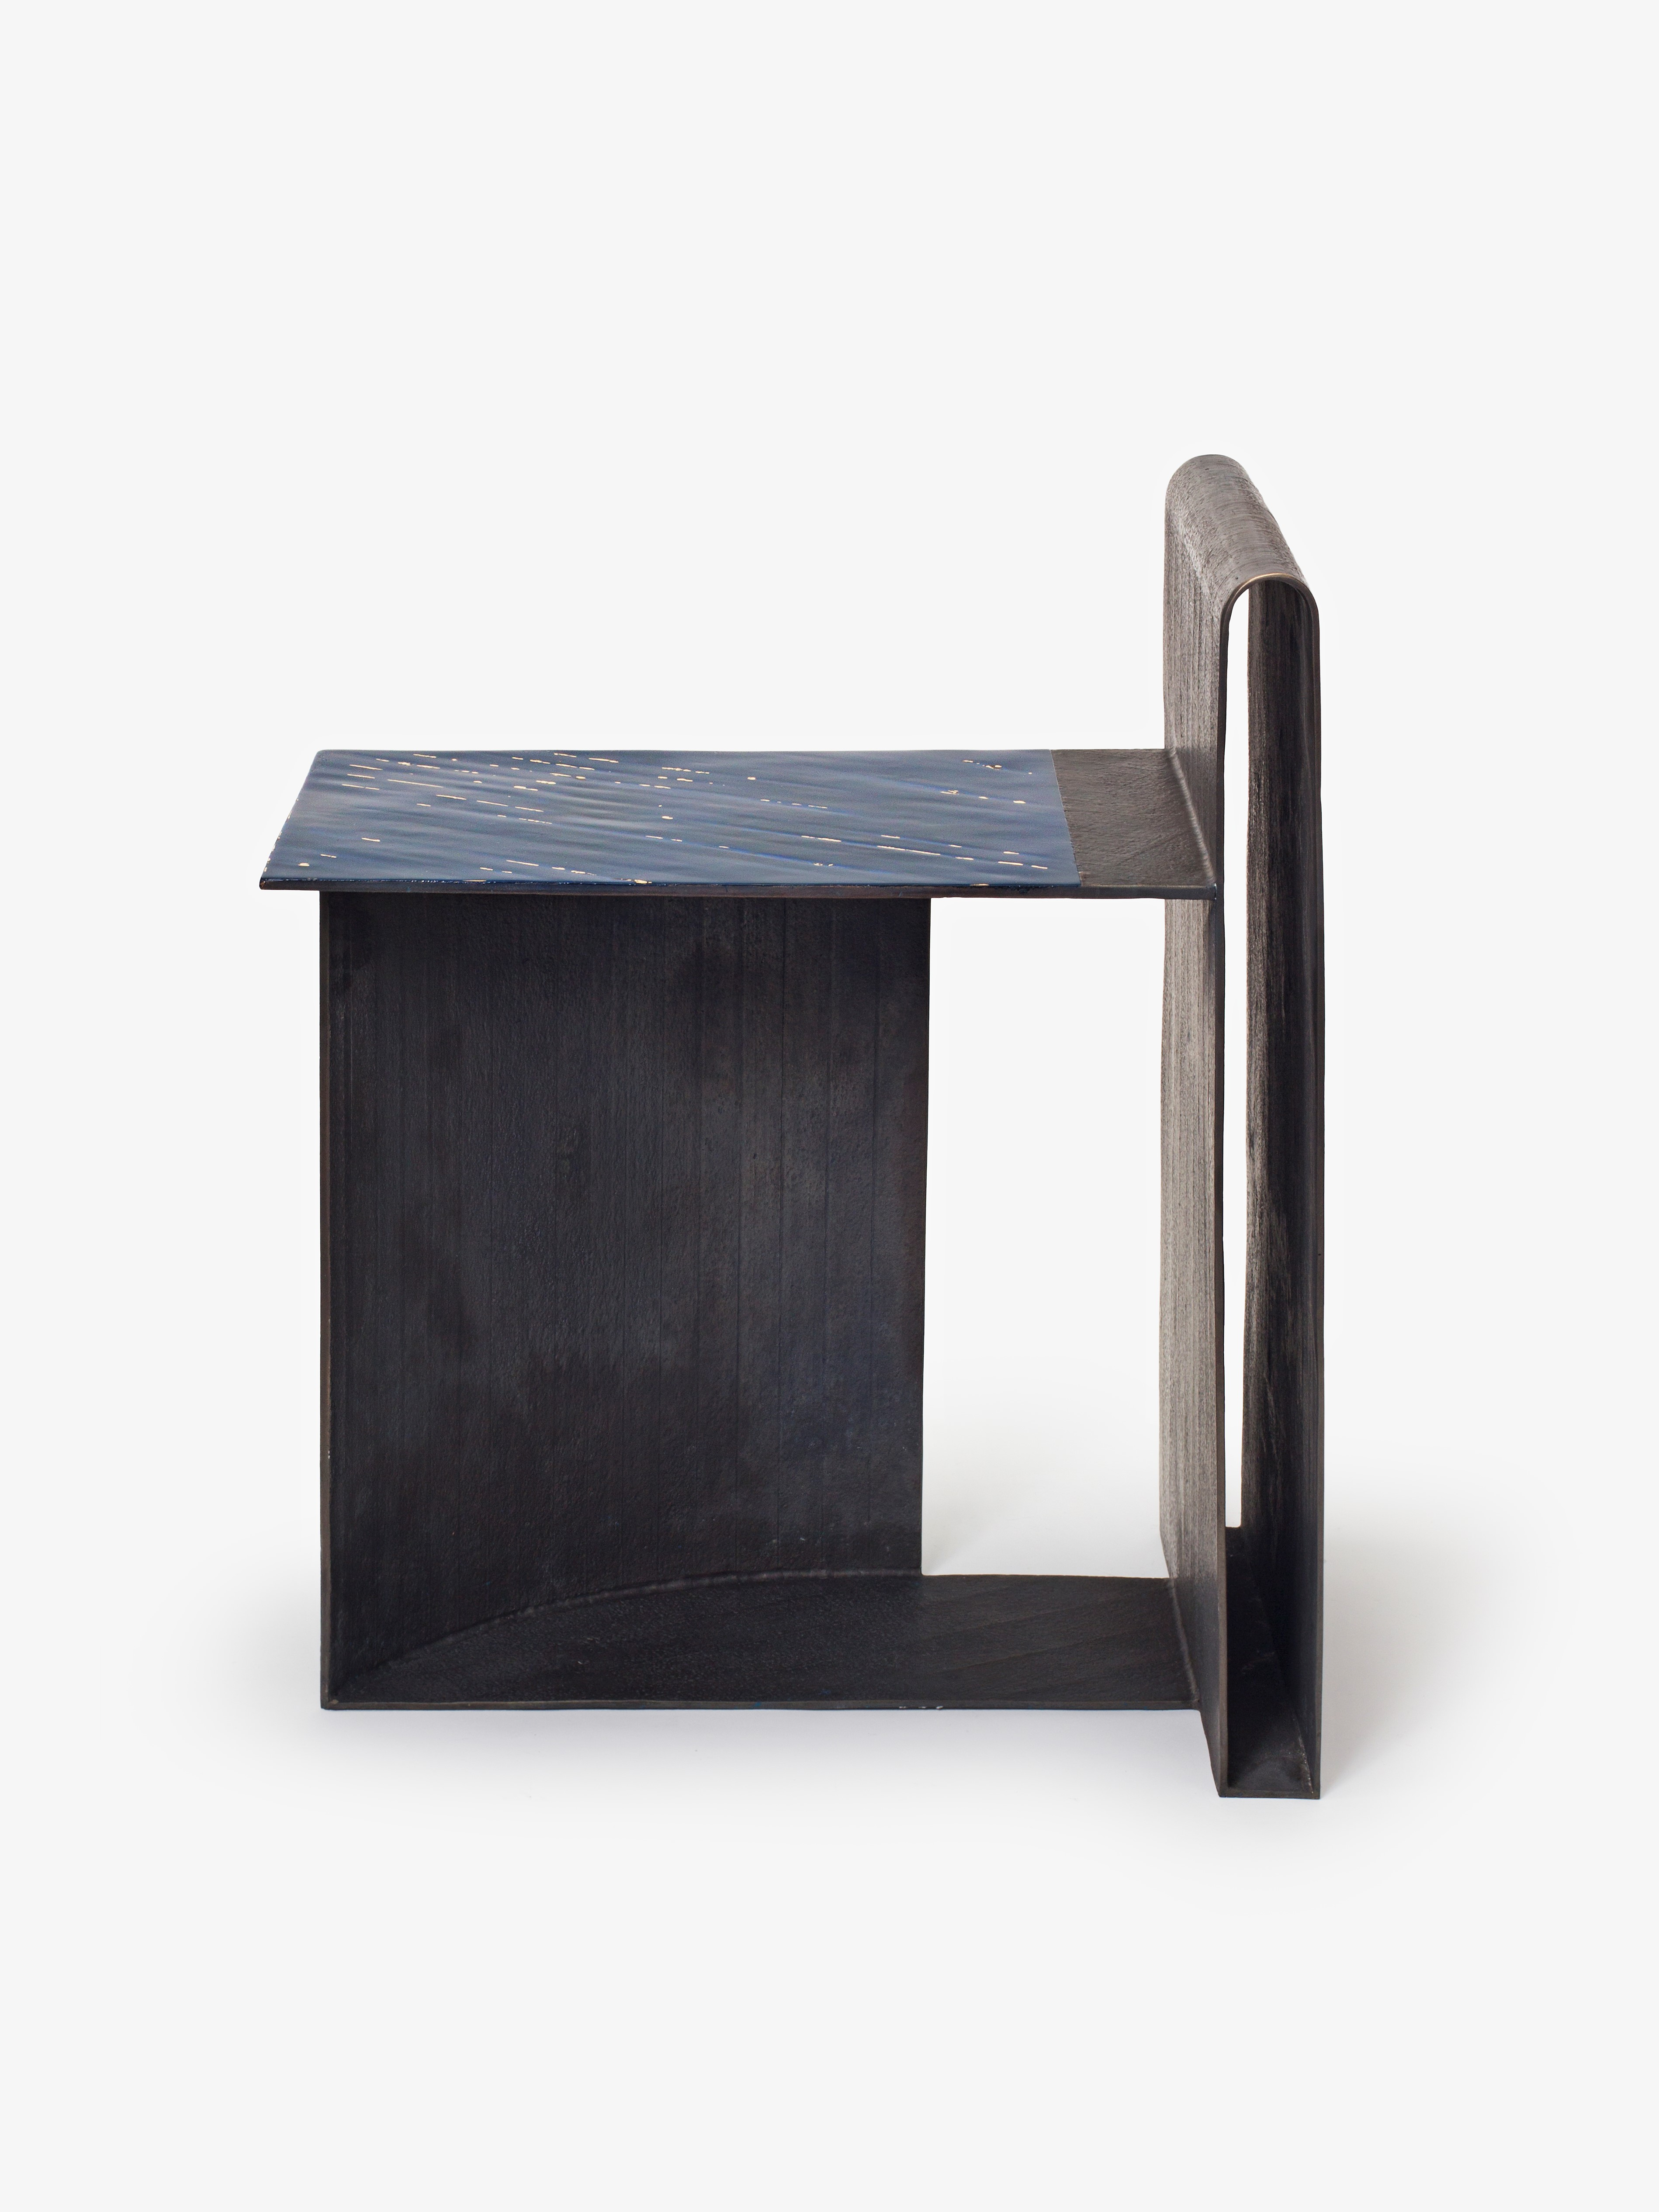 Bronze chair with Korean ott-chil lacquer seat